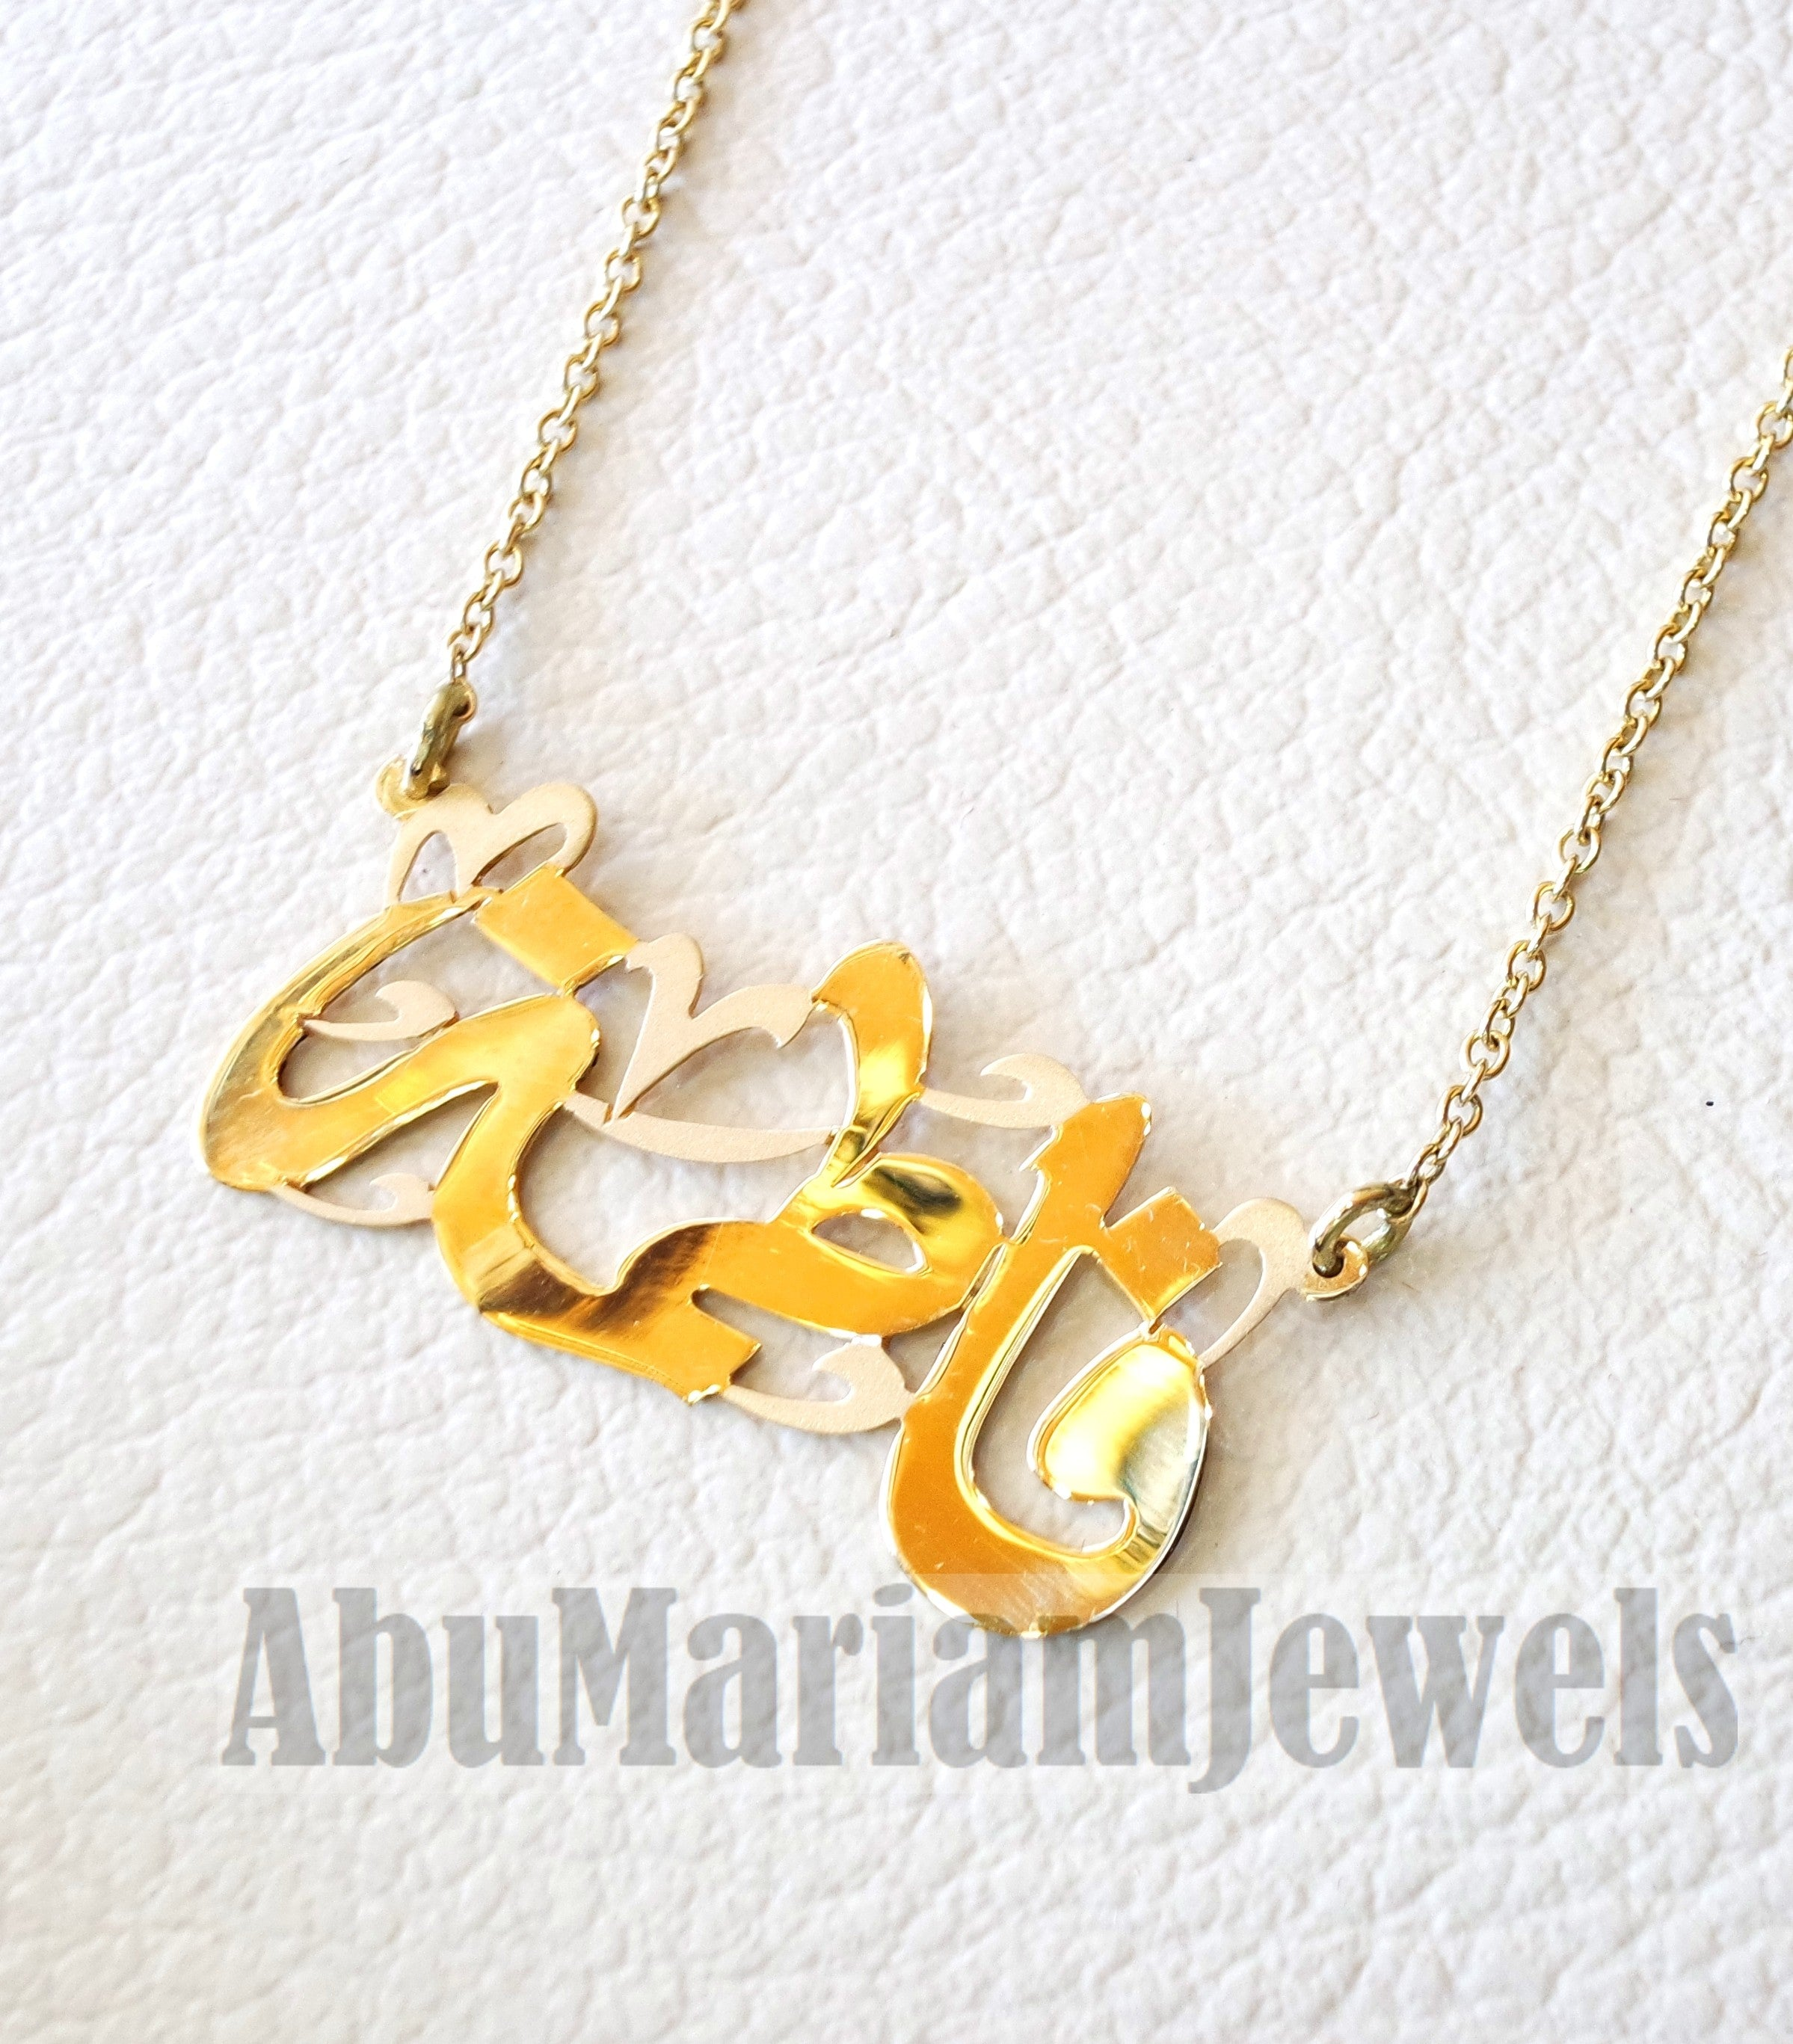 strand necklace bar personalized diamond and engraved necklaces stone pendant medium gold teeny bold with horizontal products